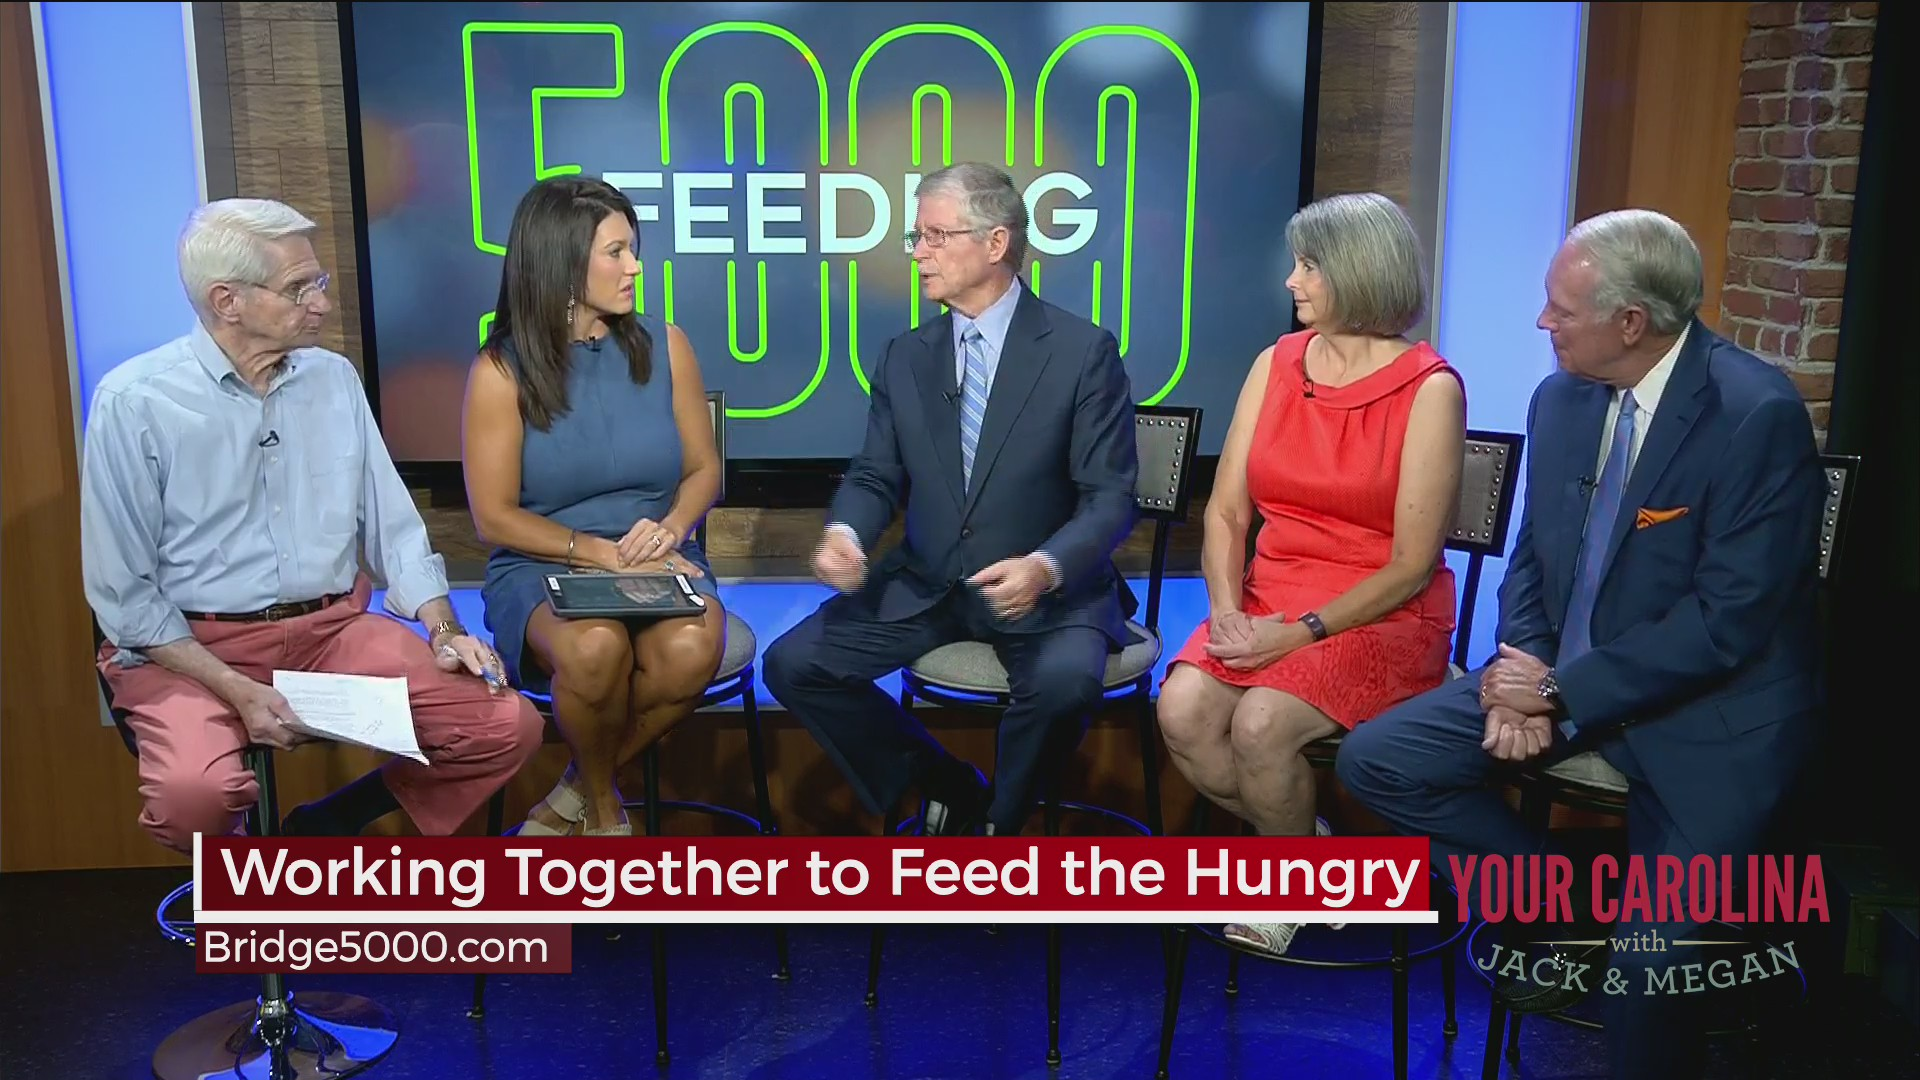 Working Together to Feed the Hungry